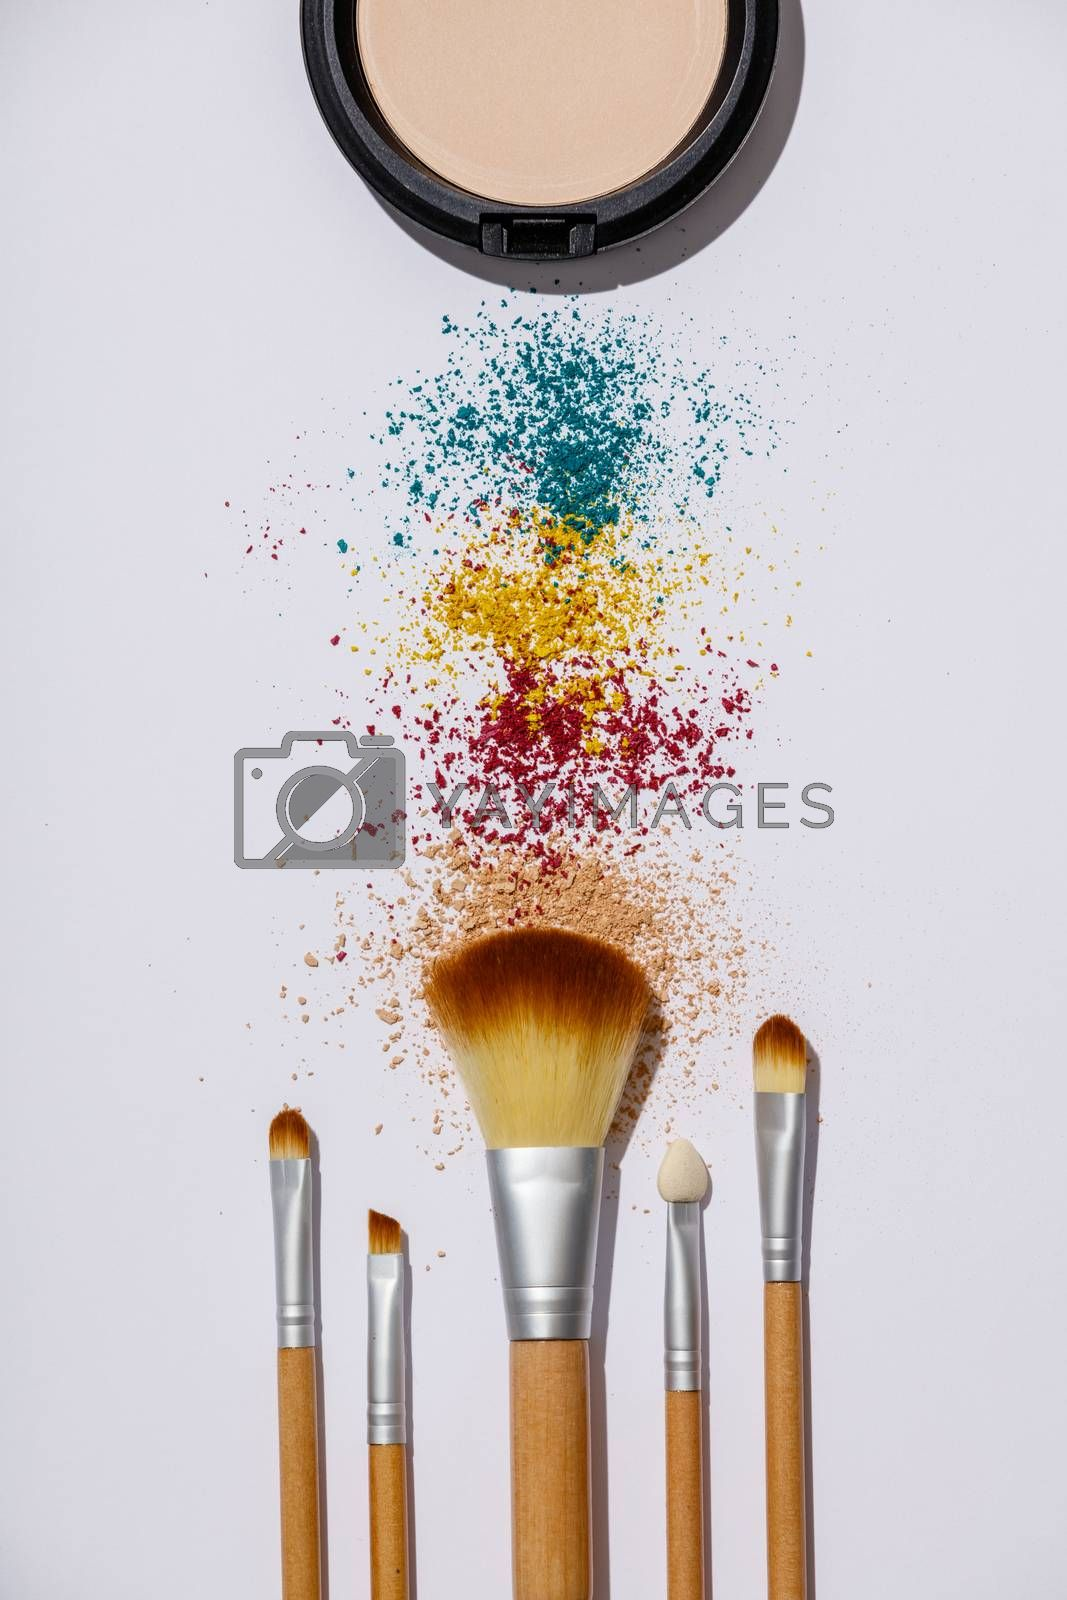 Makeup brushes and cosmetic products on a white background by klenova